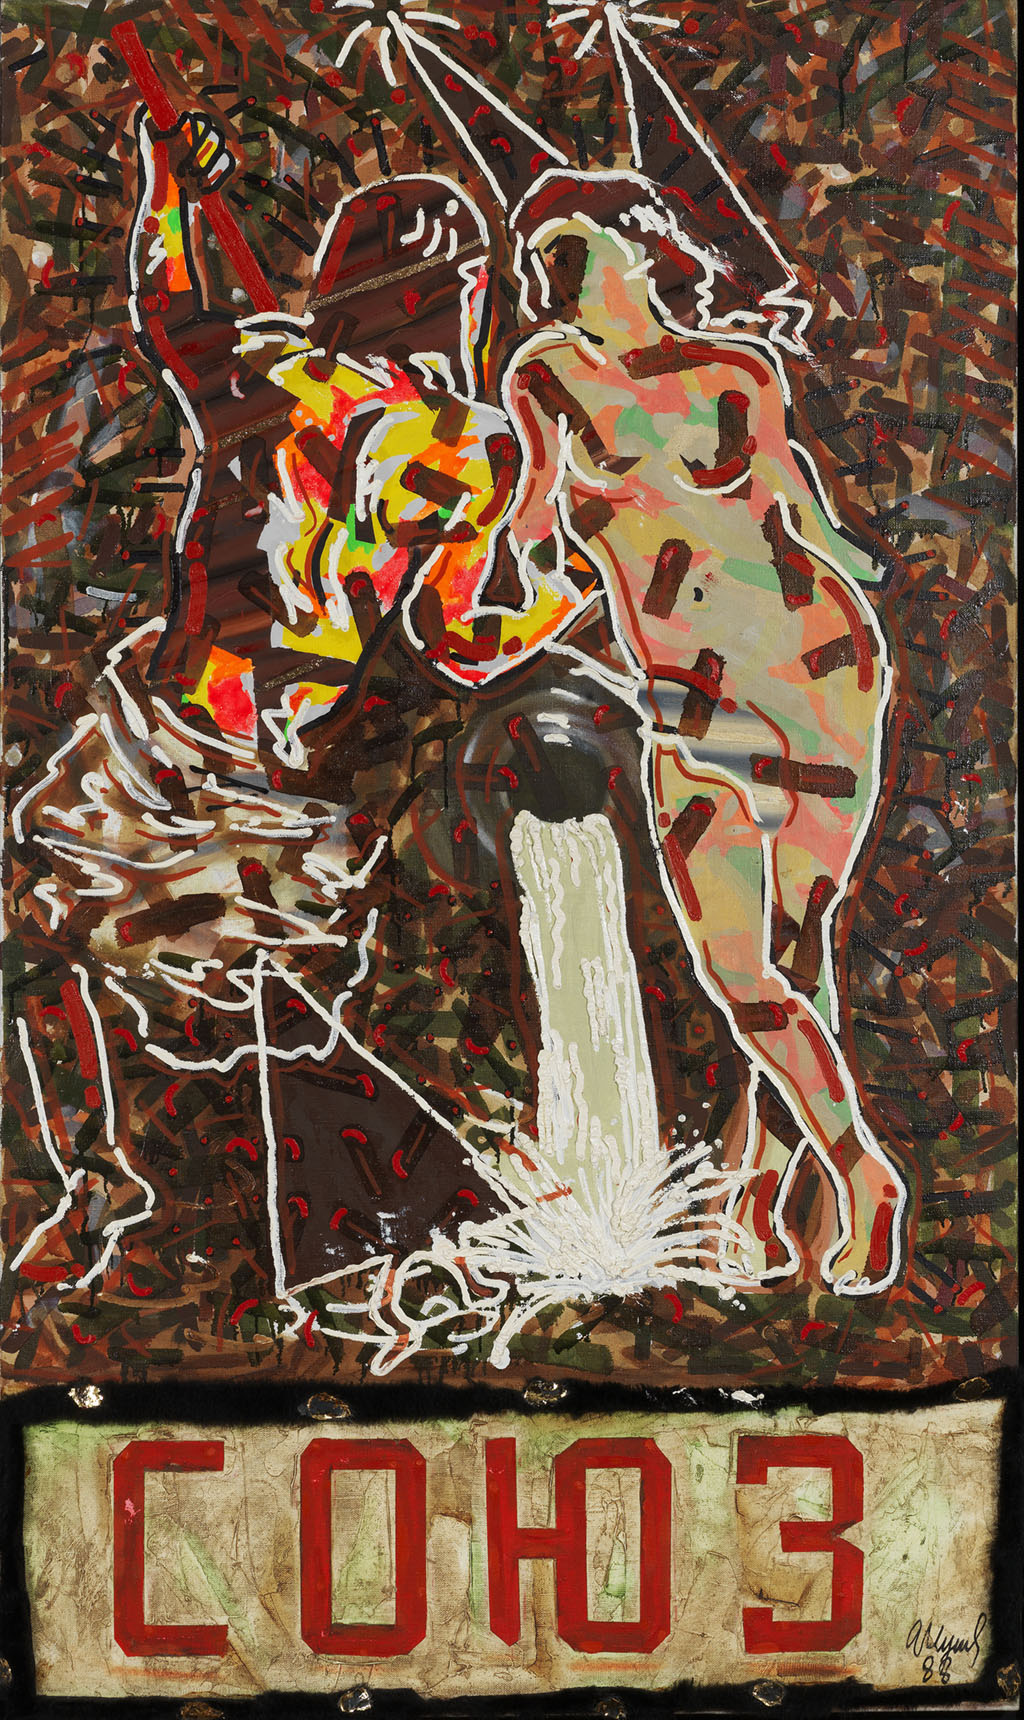 Sojuz 1989 Size: 120 x 100 cm Mixed media on canvas